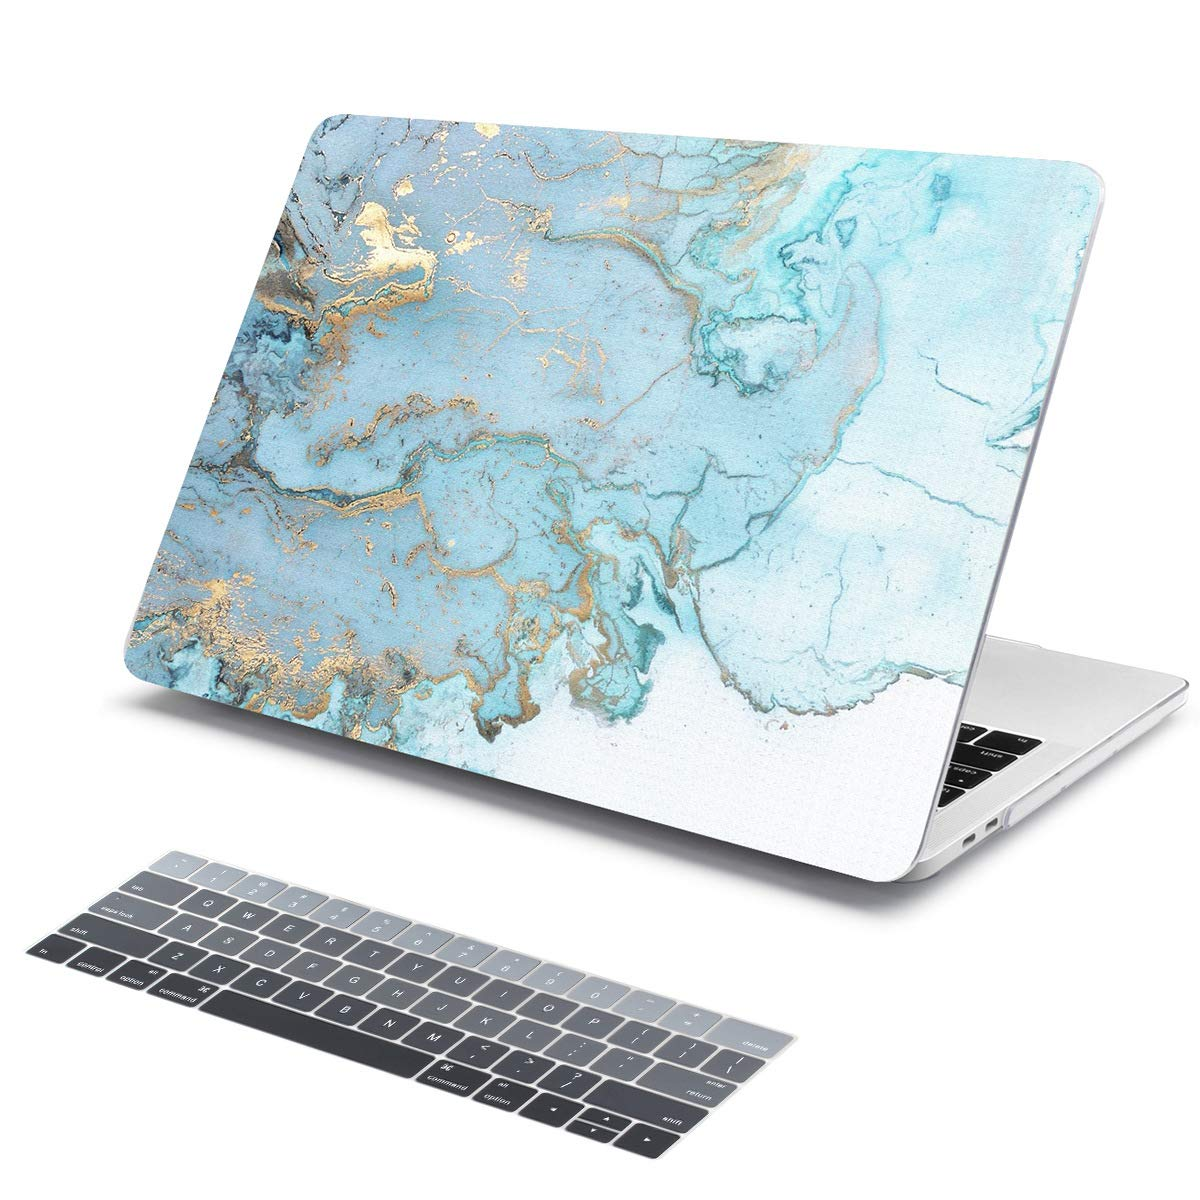 Batianda Light Blue Gold Marble Pattern Hard Protective Cover Case for New MacBook Pro 15 inch Touch Bar (Model:A1990/A1707 2018 2017 2016 Release) ...